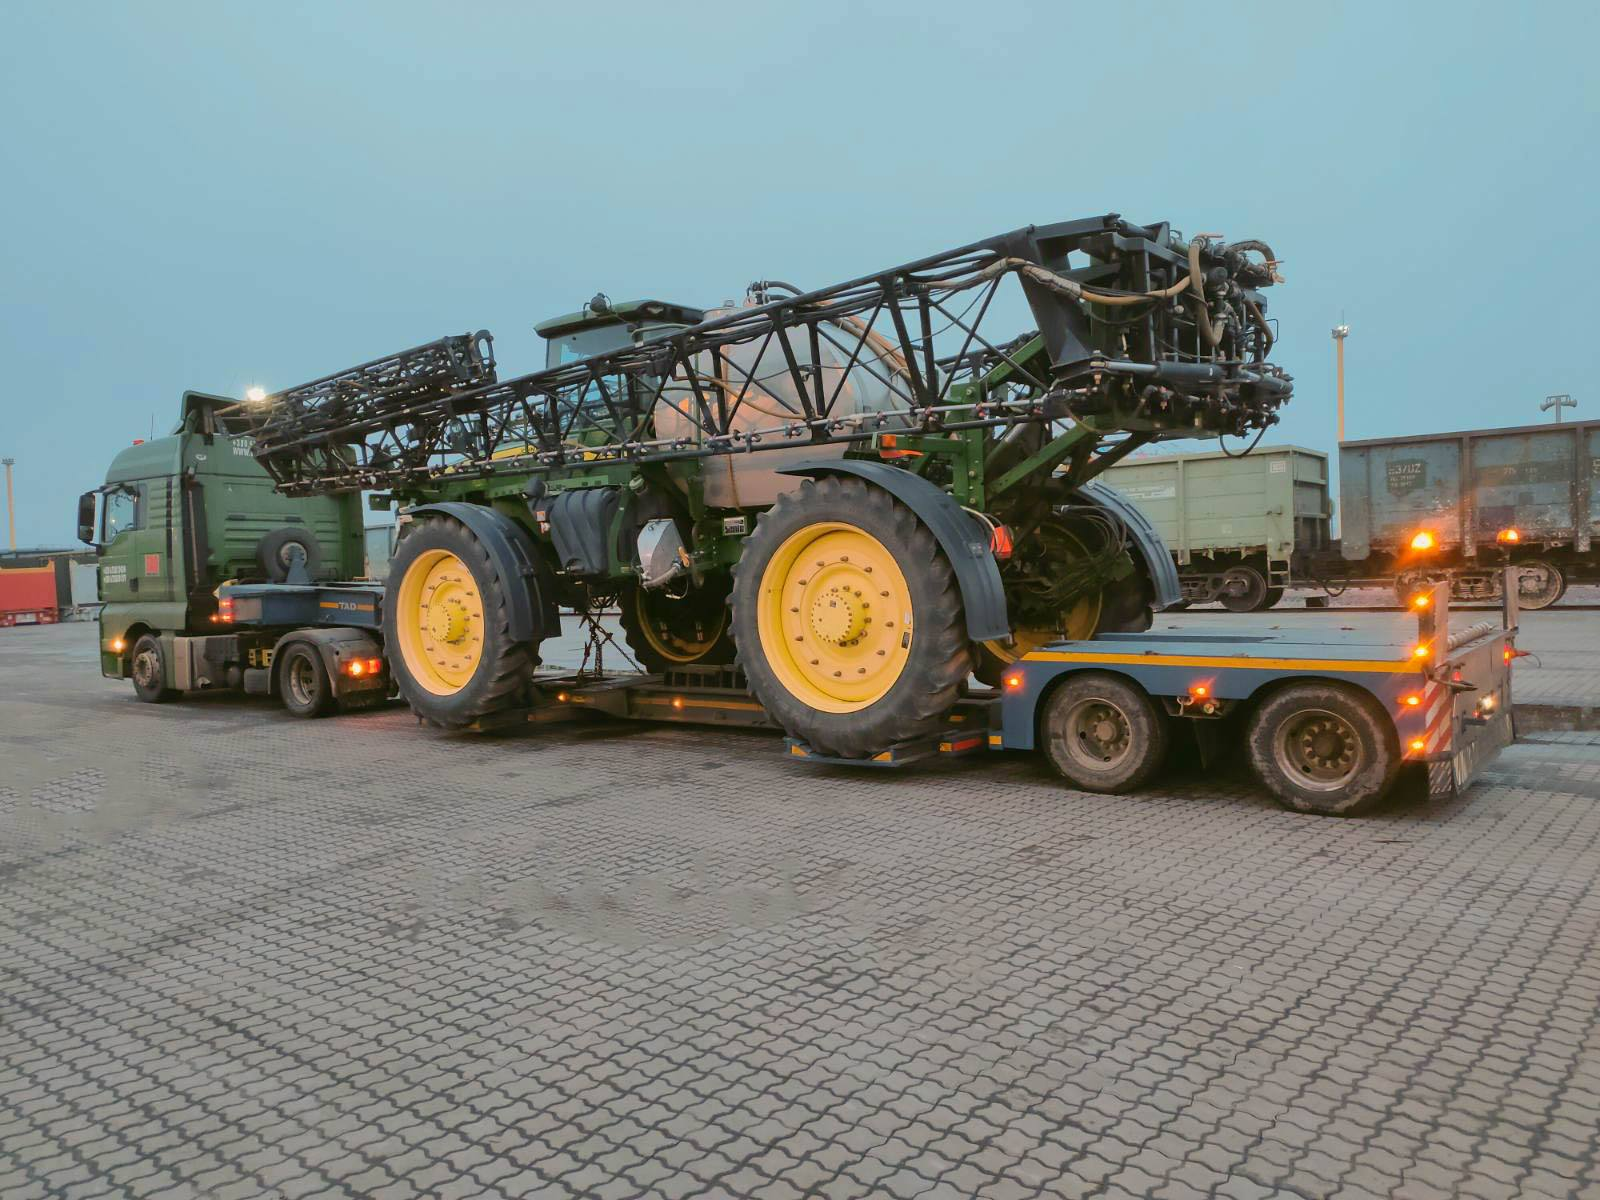 Transportation of the #JohnDeere4940 sprayer across Ukraine -1